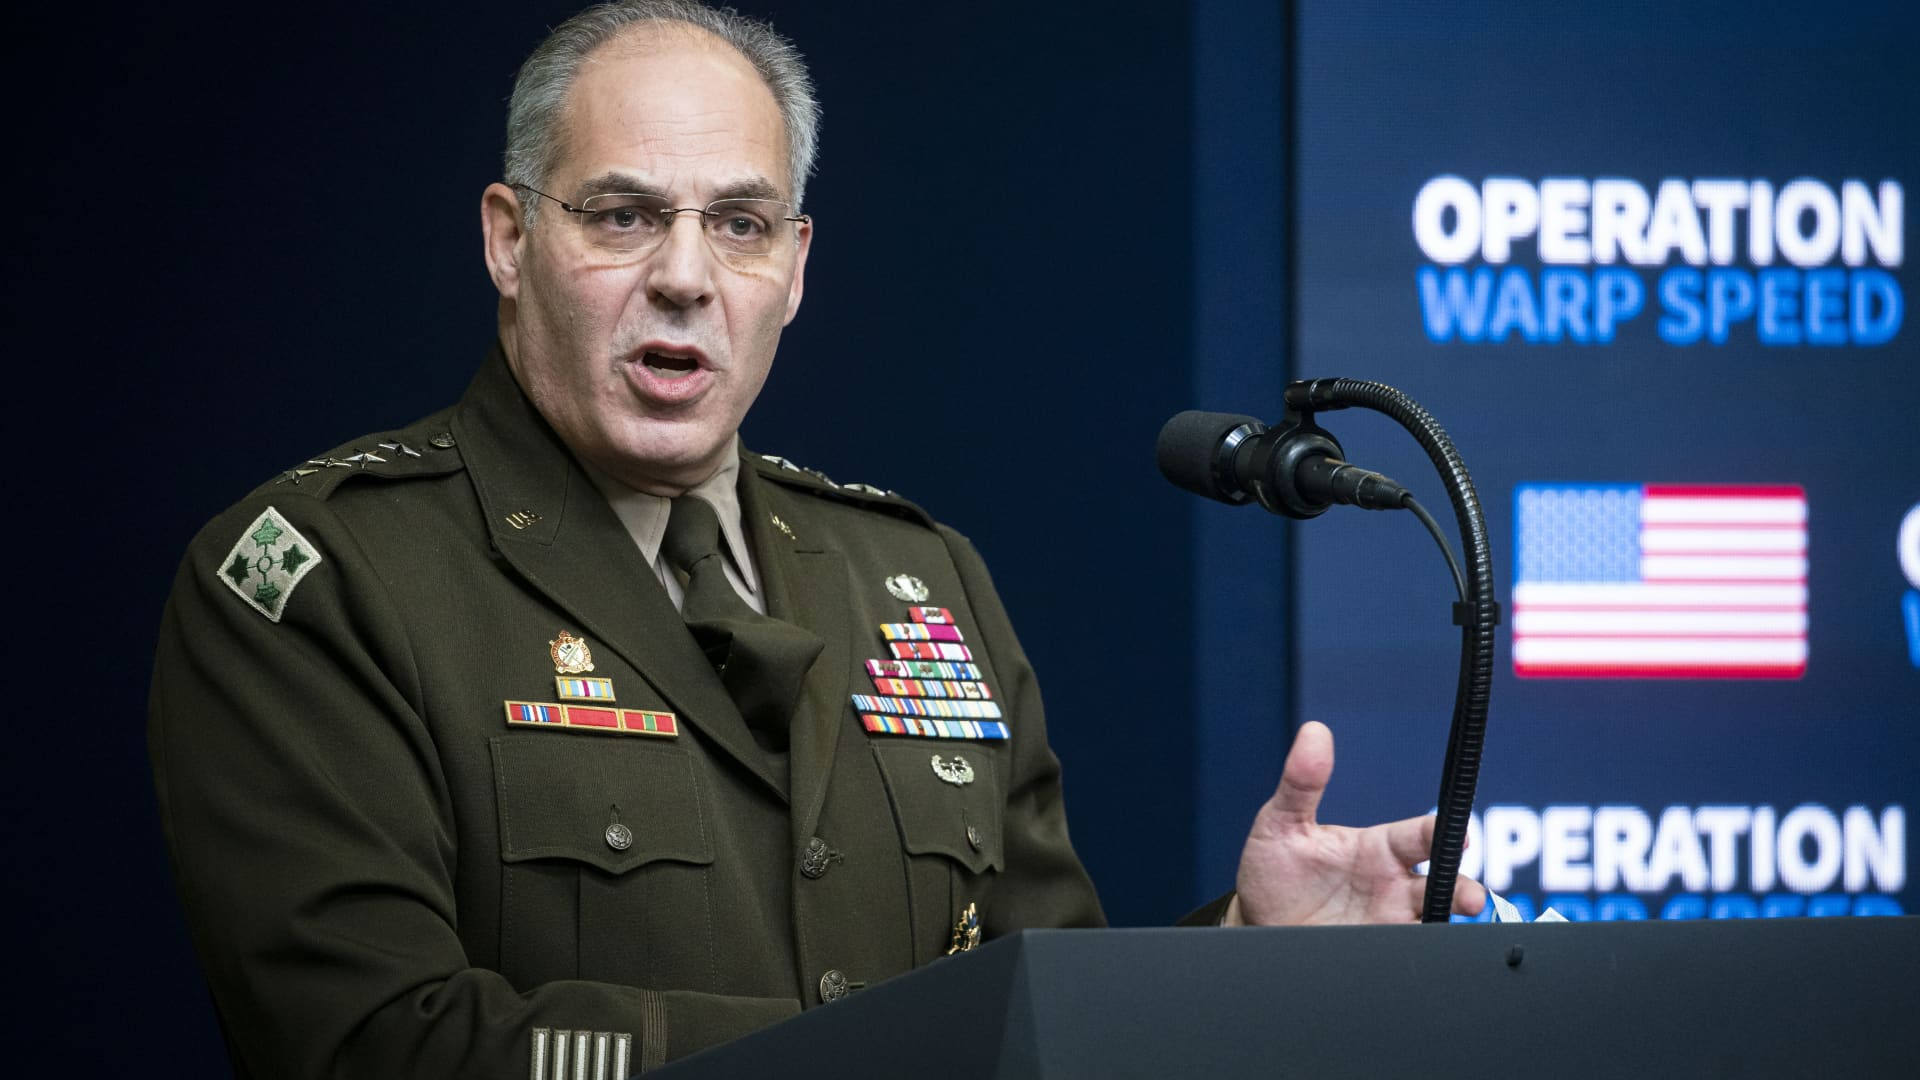 General Gustave Perna, chief operating officer for the Defense Department's Project Warp Speed, speaks during an Operation Warp Speed vaccine summit at the White House in Washington, D.C., U.S., on Tuesday, Dec. 8, 2020.